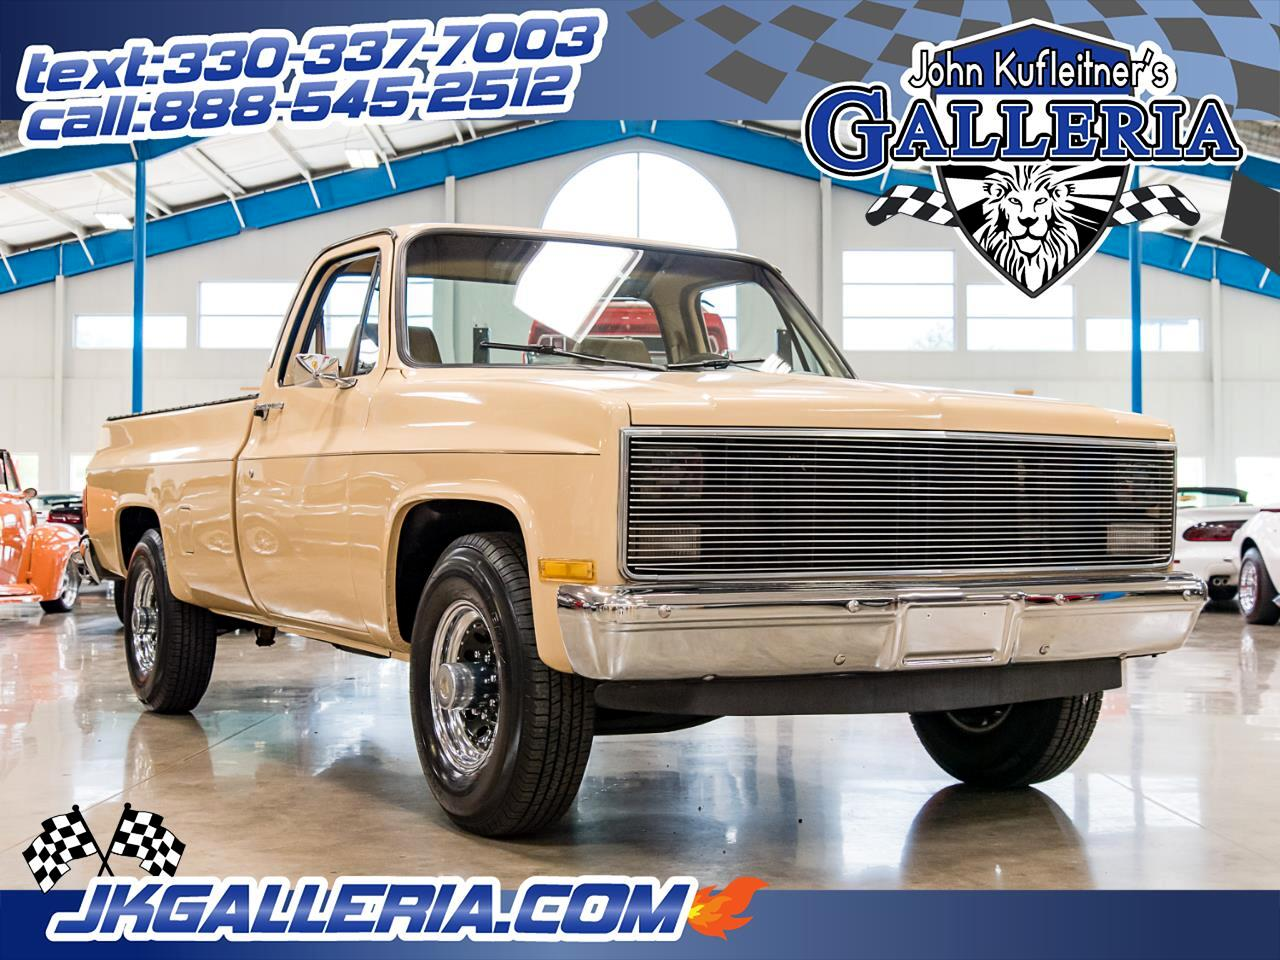 1983 Chevrolet Pickup C20 Fleetside